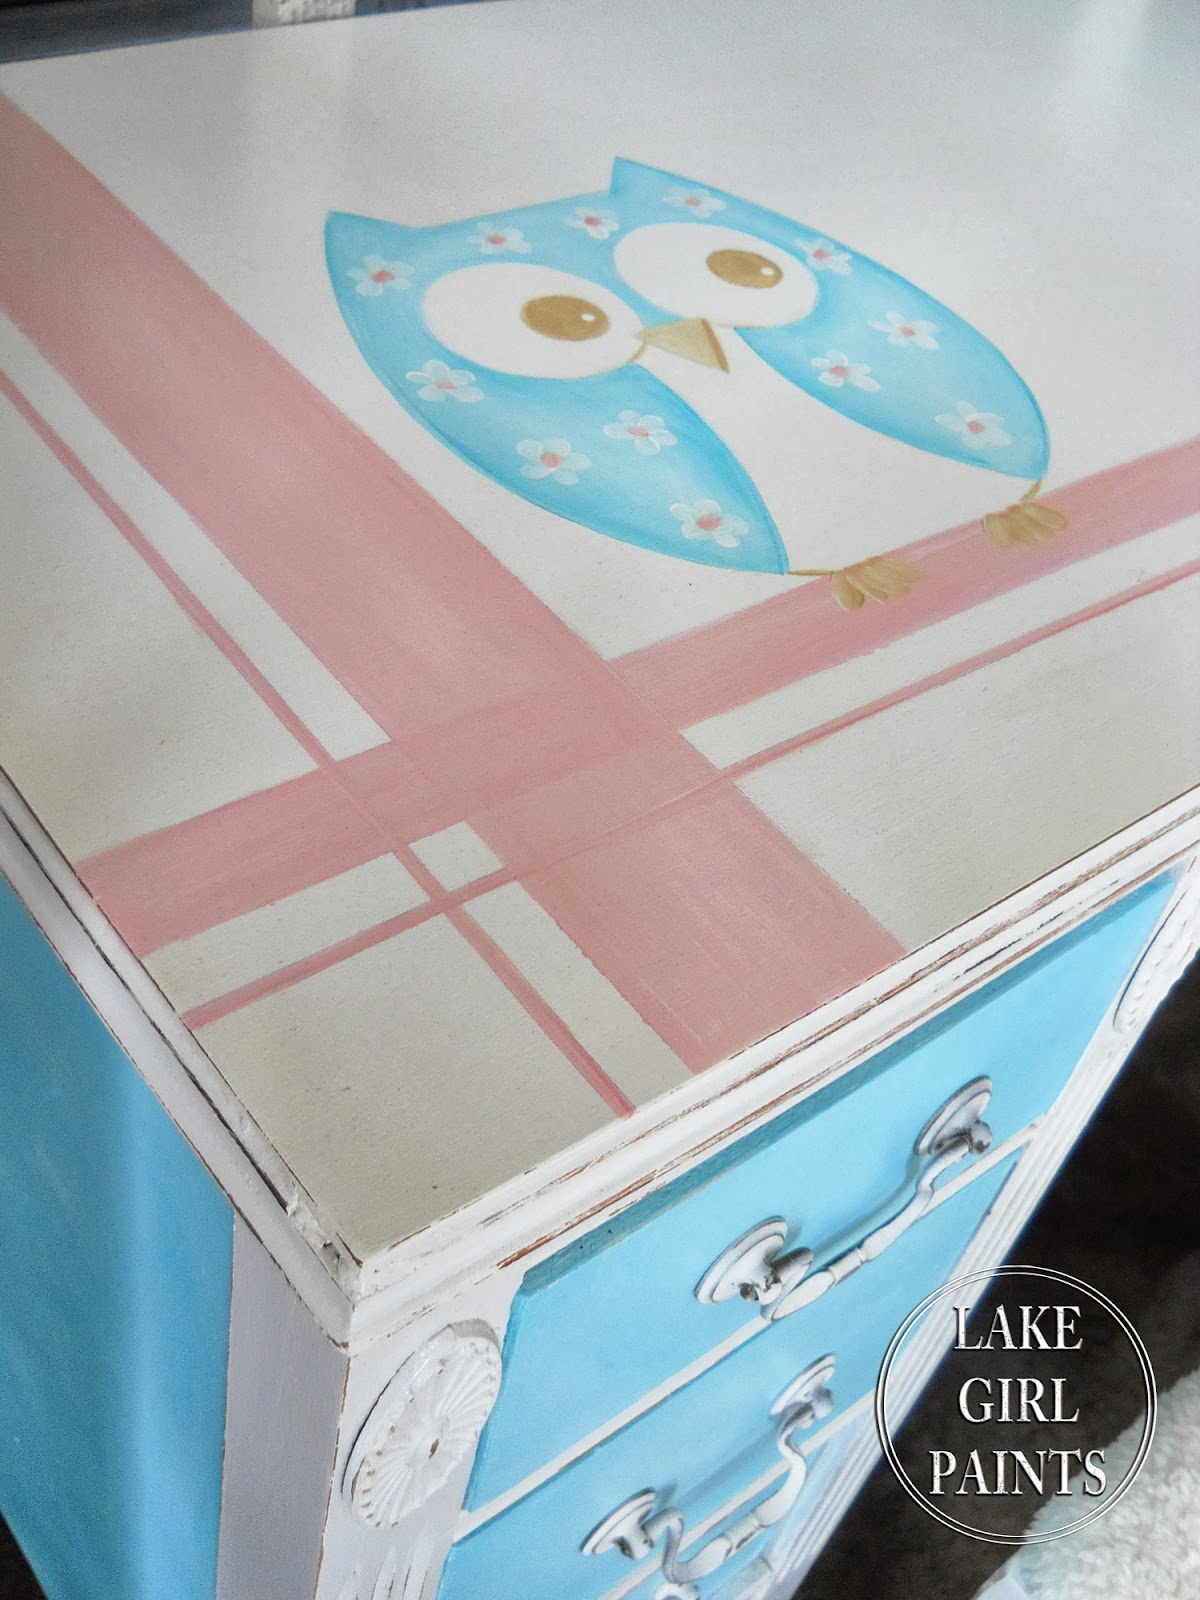 Lake Girl Paints Girls Painted Bedroom Furniture - Girls-bedroom-sets-painting